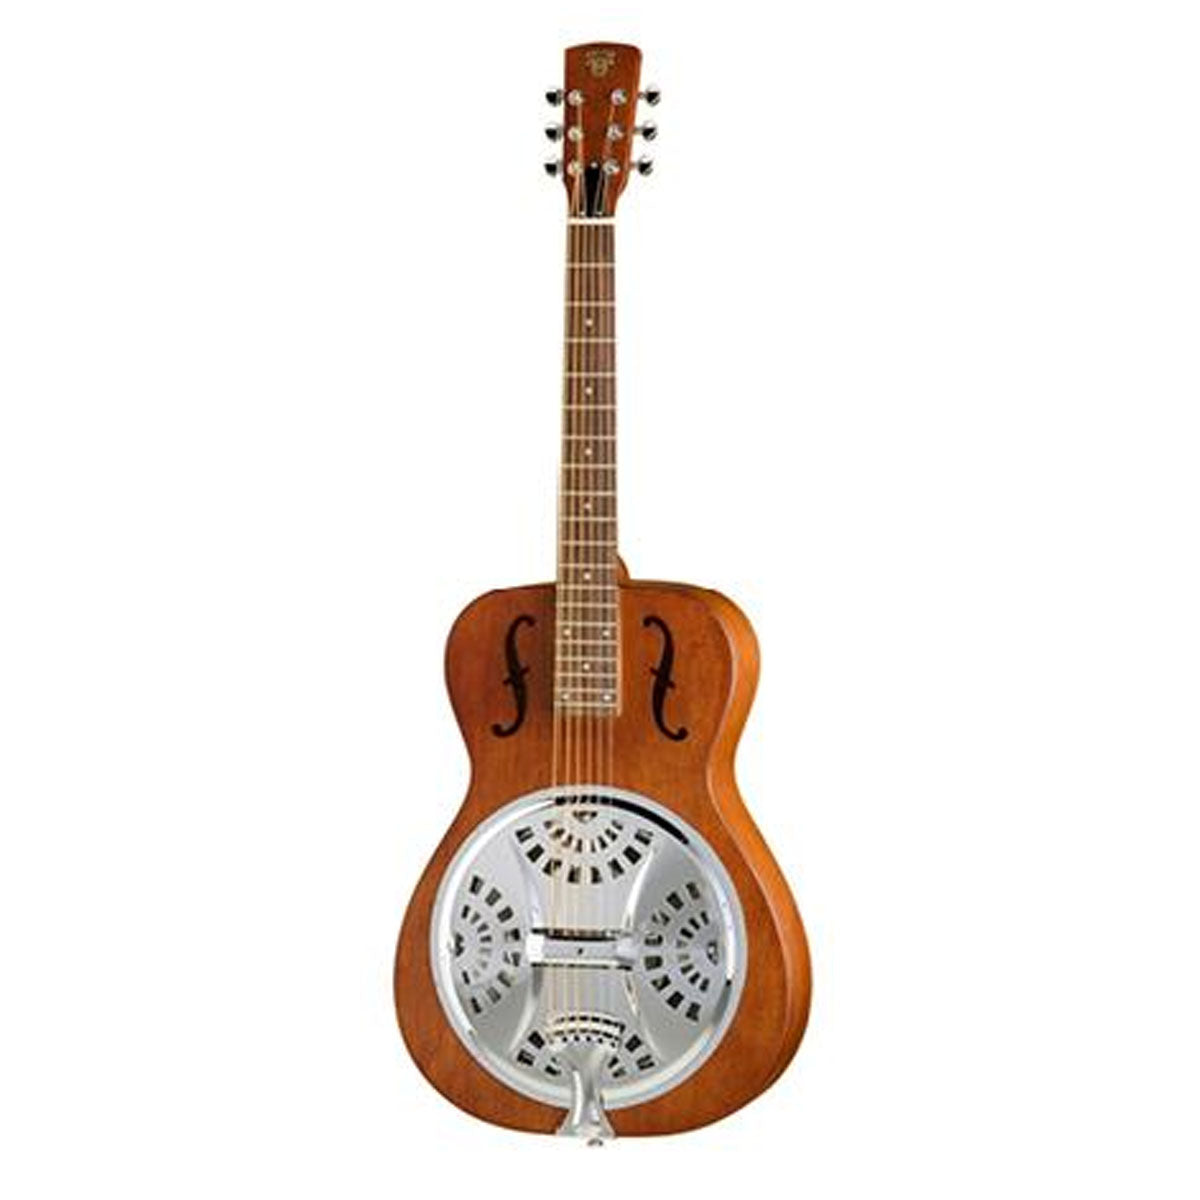 Epiphone Dobro Hound Dog Round Neck Resonate Guitar Vintage Brown - DWHOUNDRN